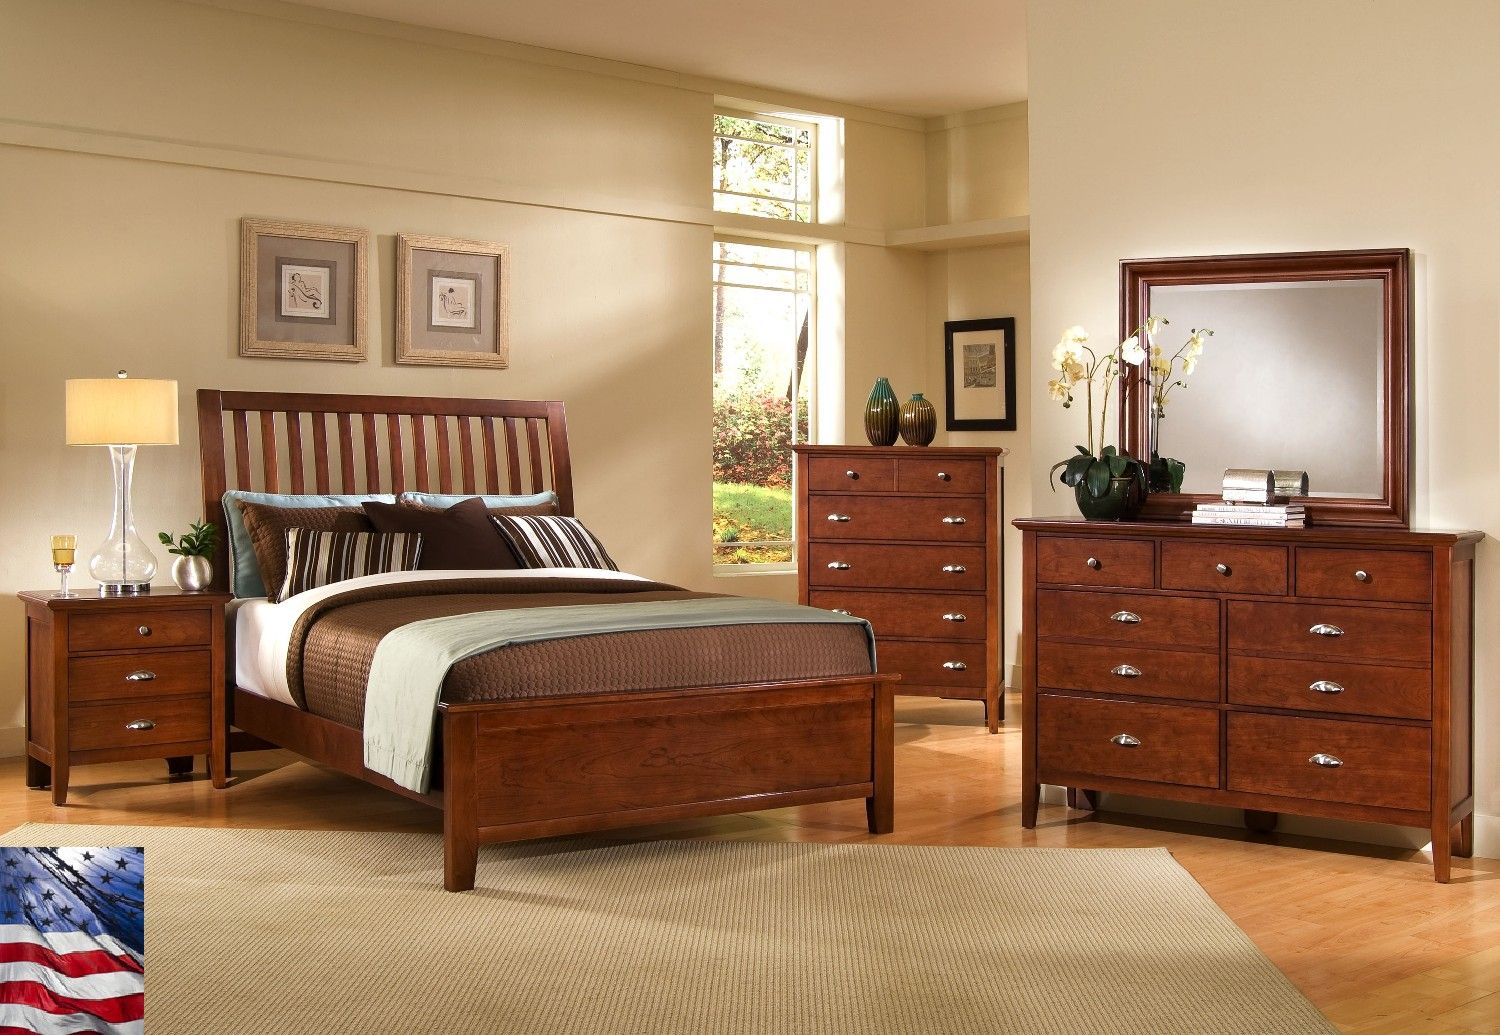 Wood Decorating Ideas For Creative Beige Themed Bedroom With